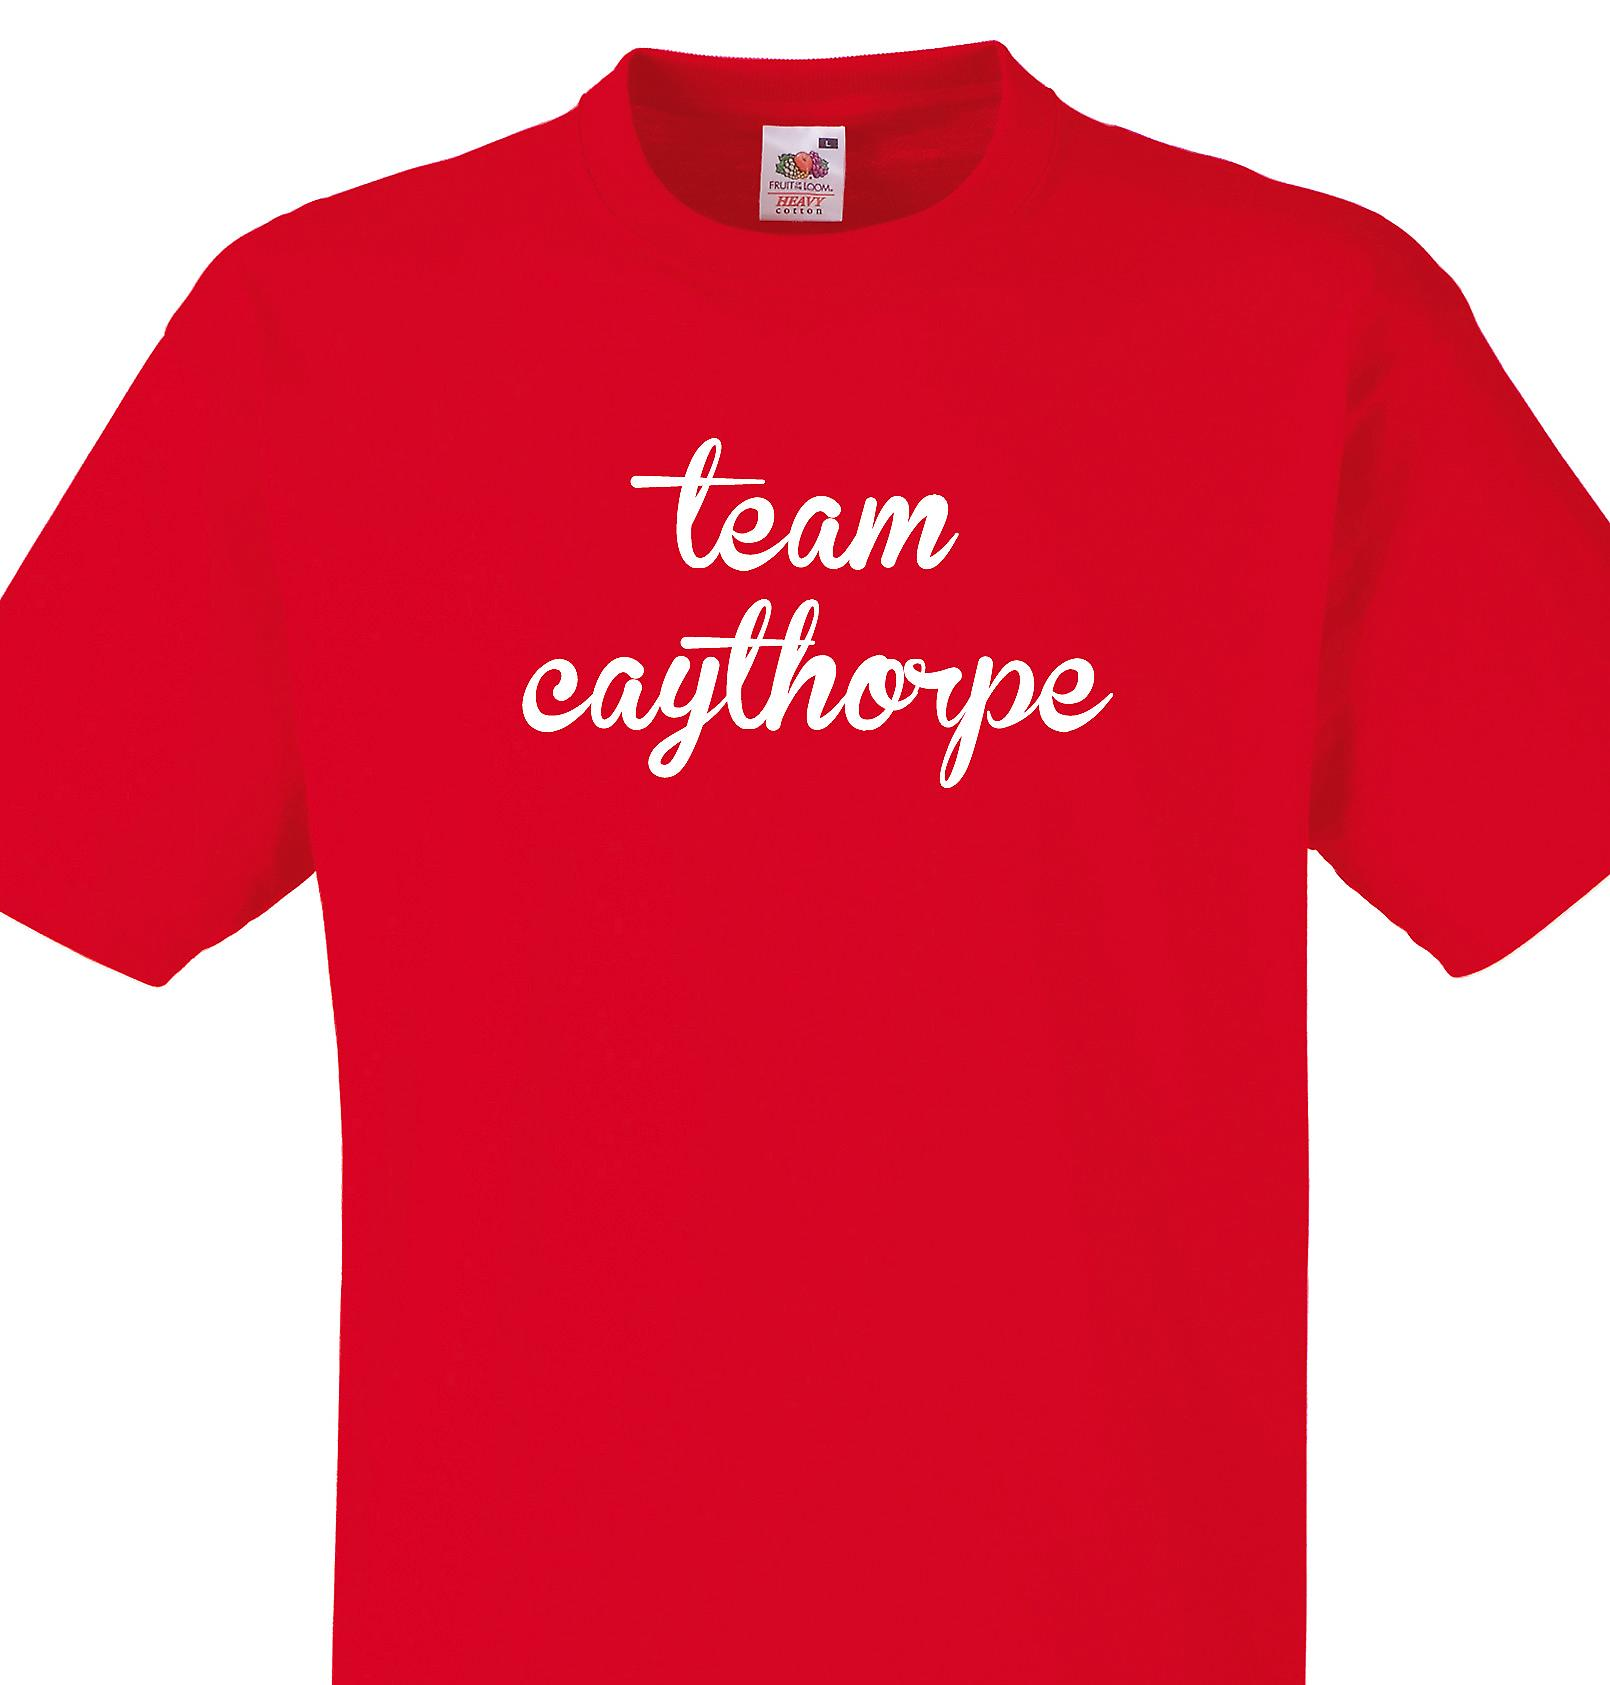 Team Caythorpe Red T shirt